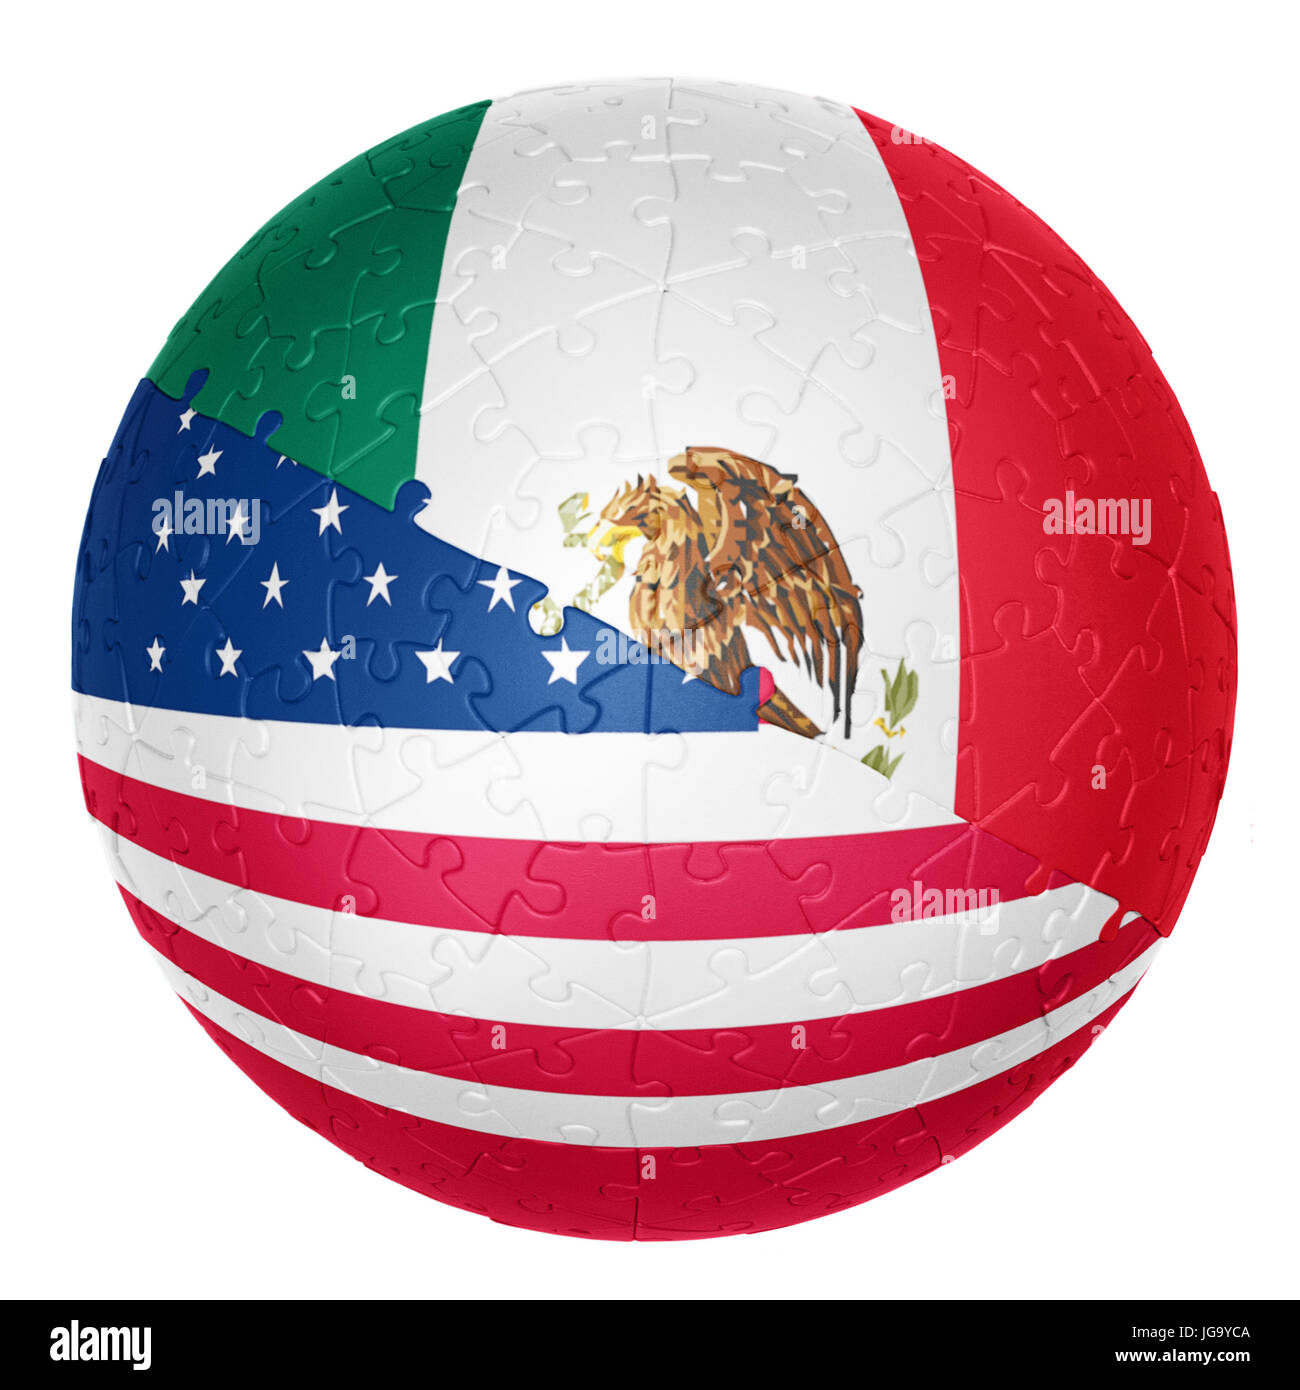 jigsaw ball one half is the Mexico flag the other half is the USA flag 3D illusions - Stock Image